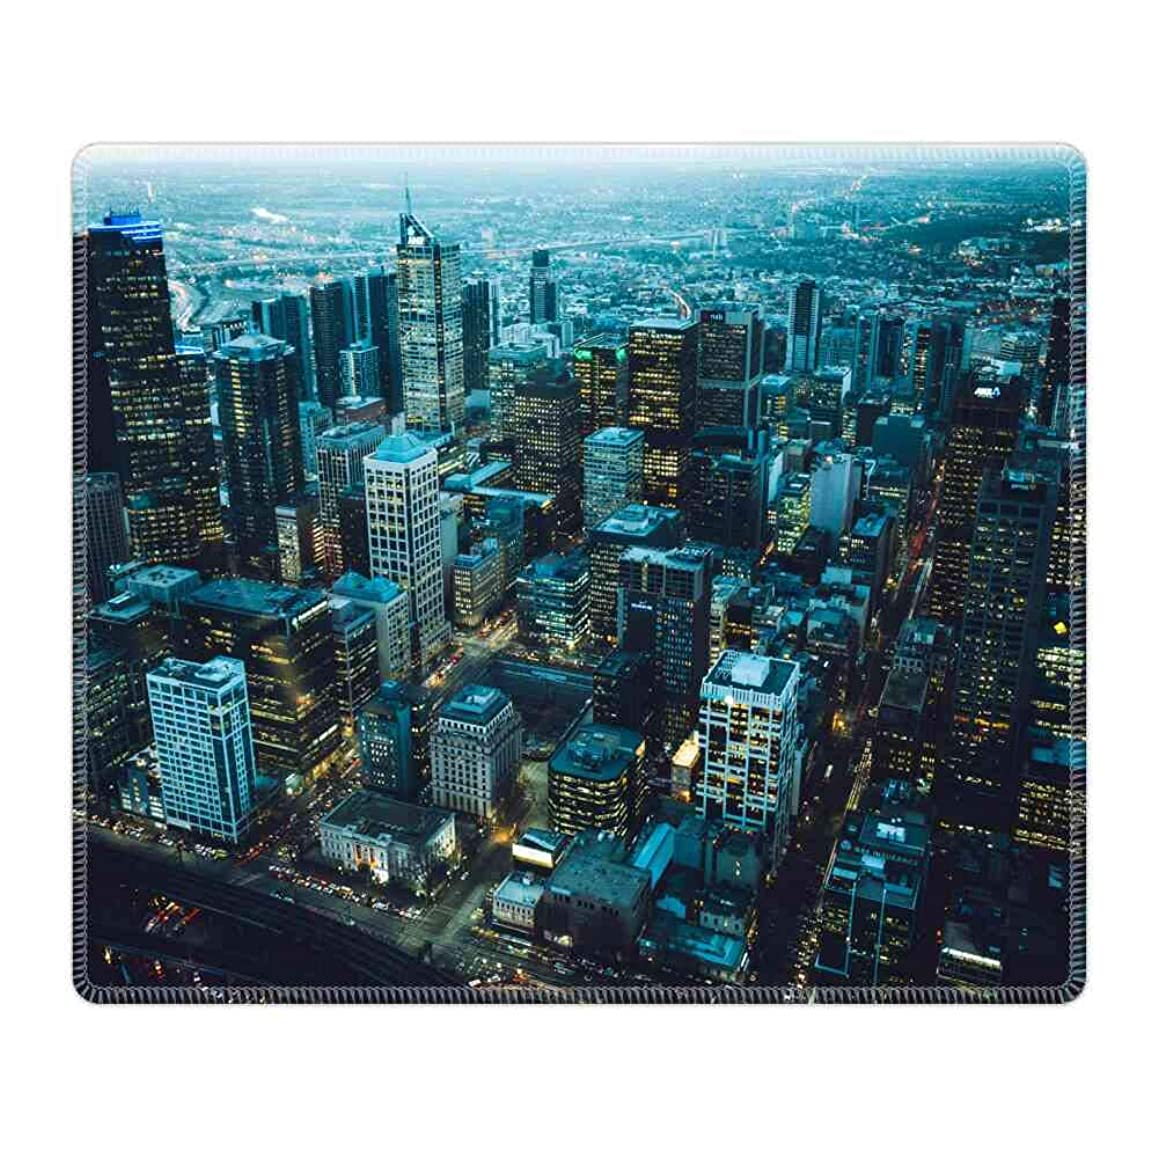 Mouse Pad Large Mousepad for Gaming Bird's Eye View of City Rectangle Rubber Cloth Mat (26CM x 21CM x 3MM) for Computer Laptop MacBook